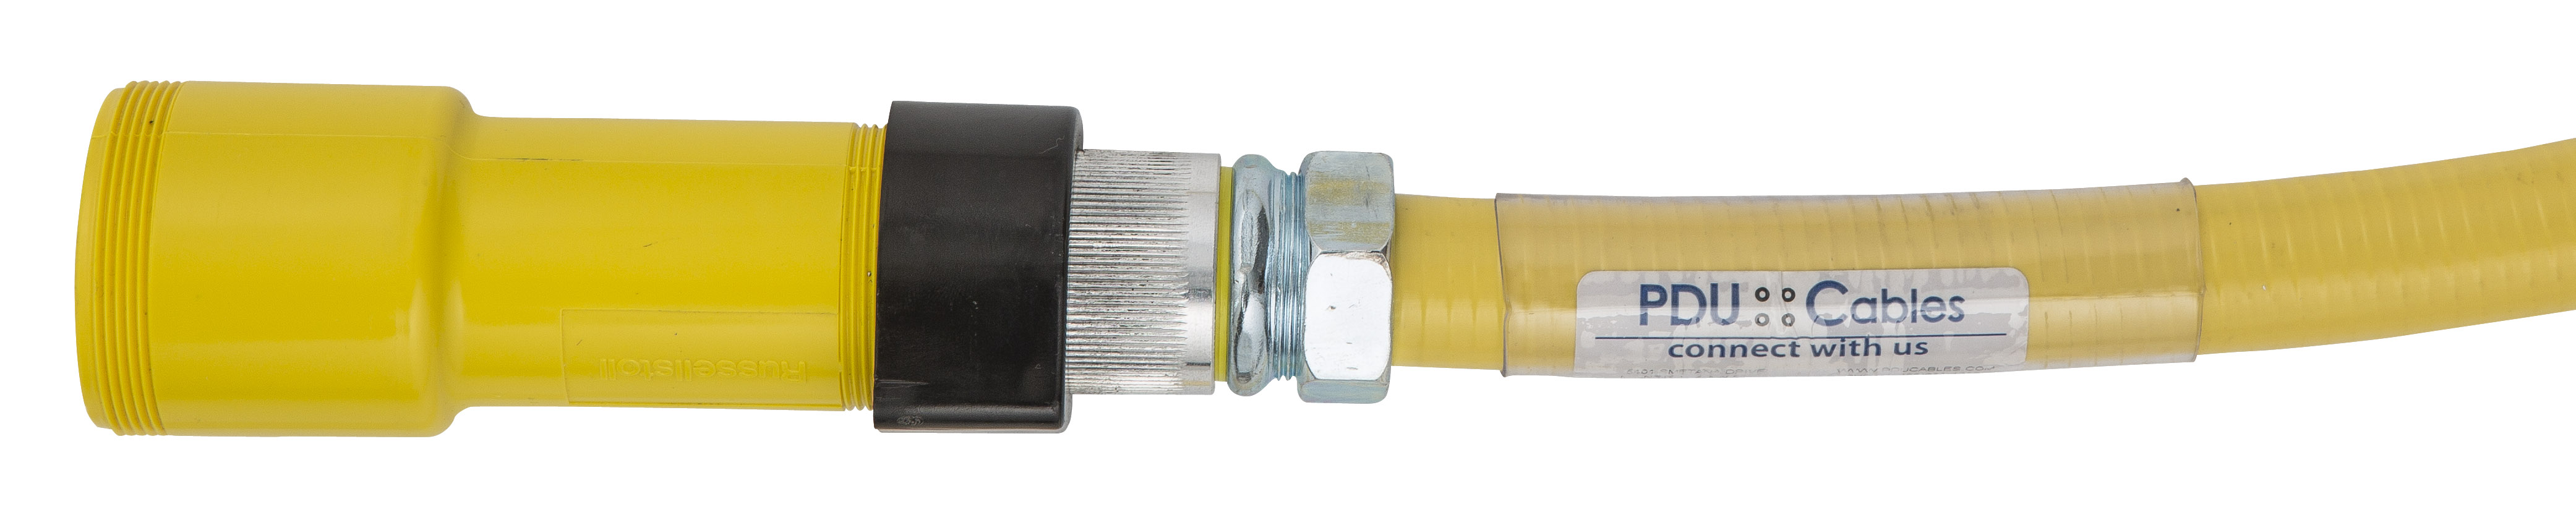 Russell Stoll Thomas & Betts style data center power cable plug and receptacle IBM style